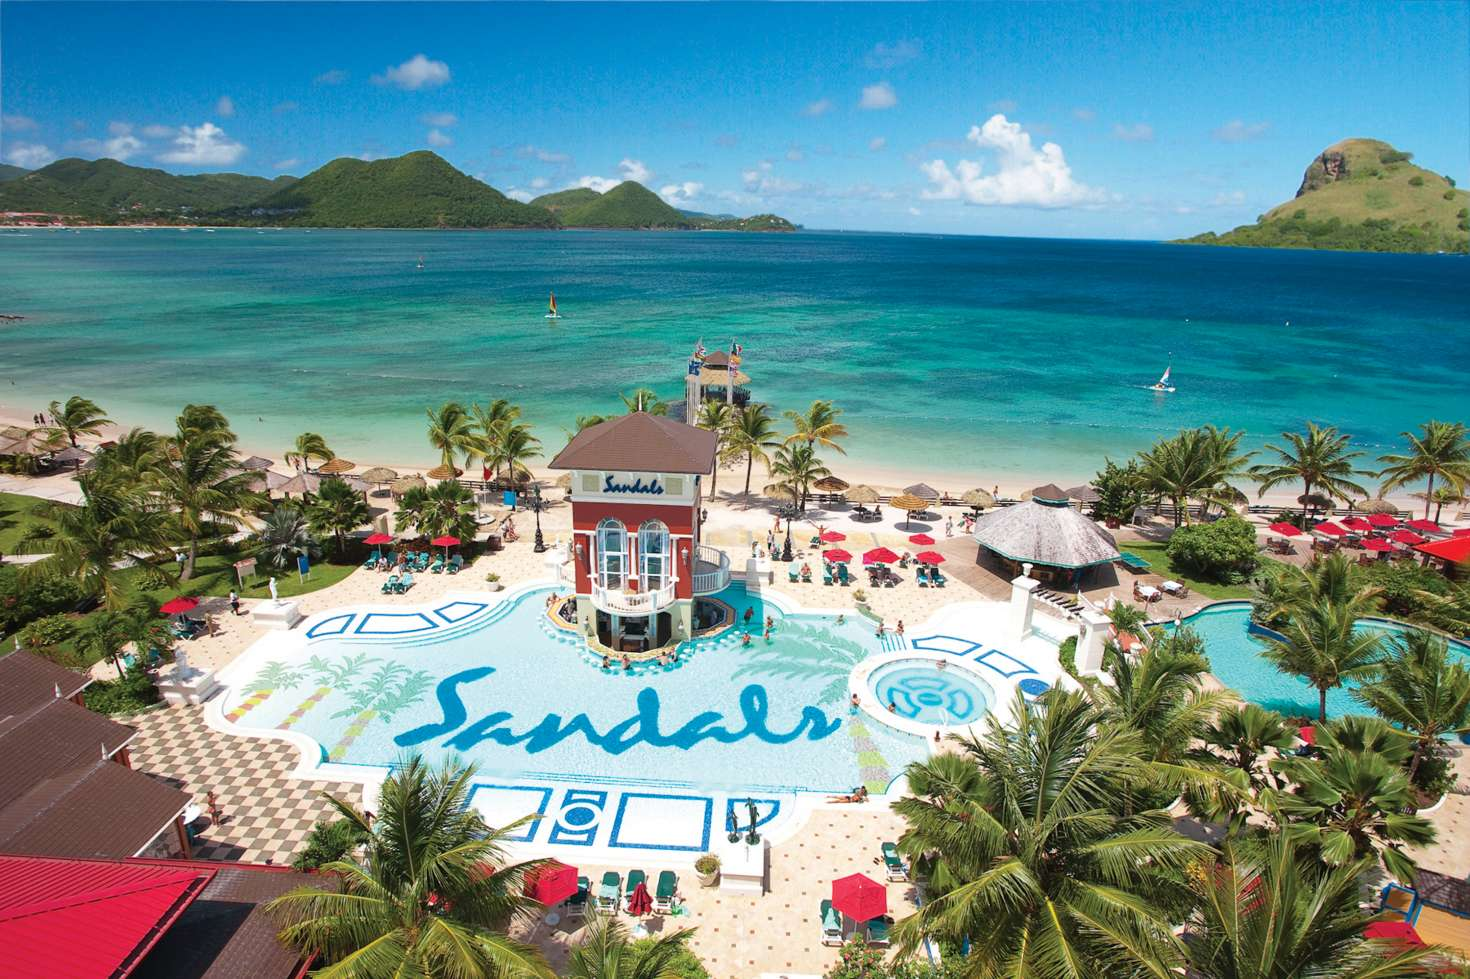 Image of Sandals Grande St. Lucian Spa & Beach Resort, Gros Islet, St Lucia